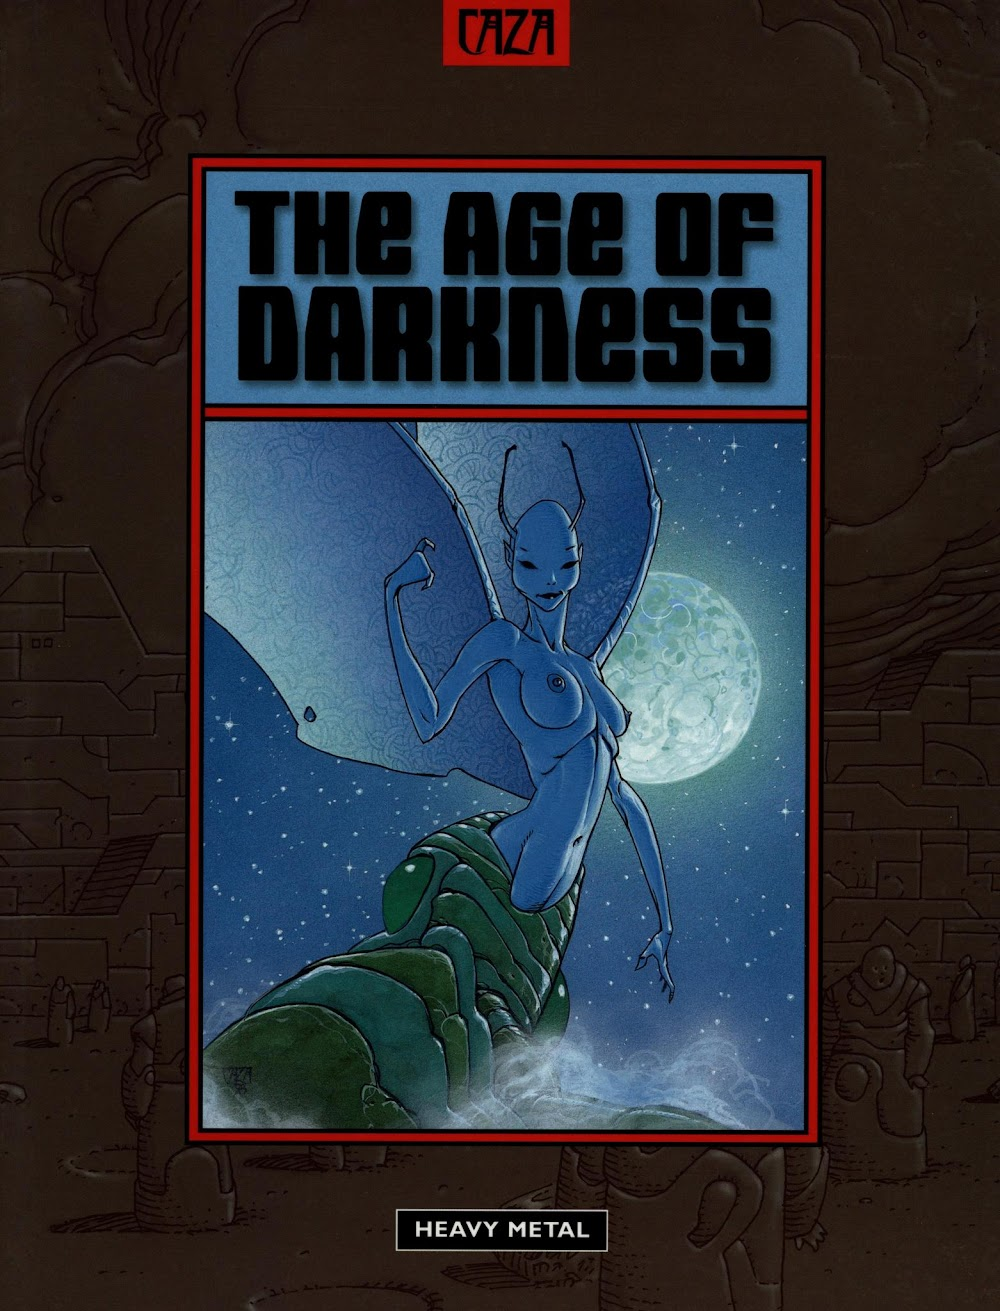 The Age of Darkness (1998)